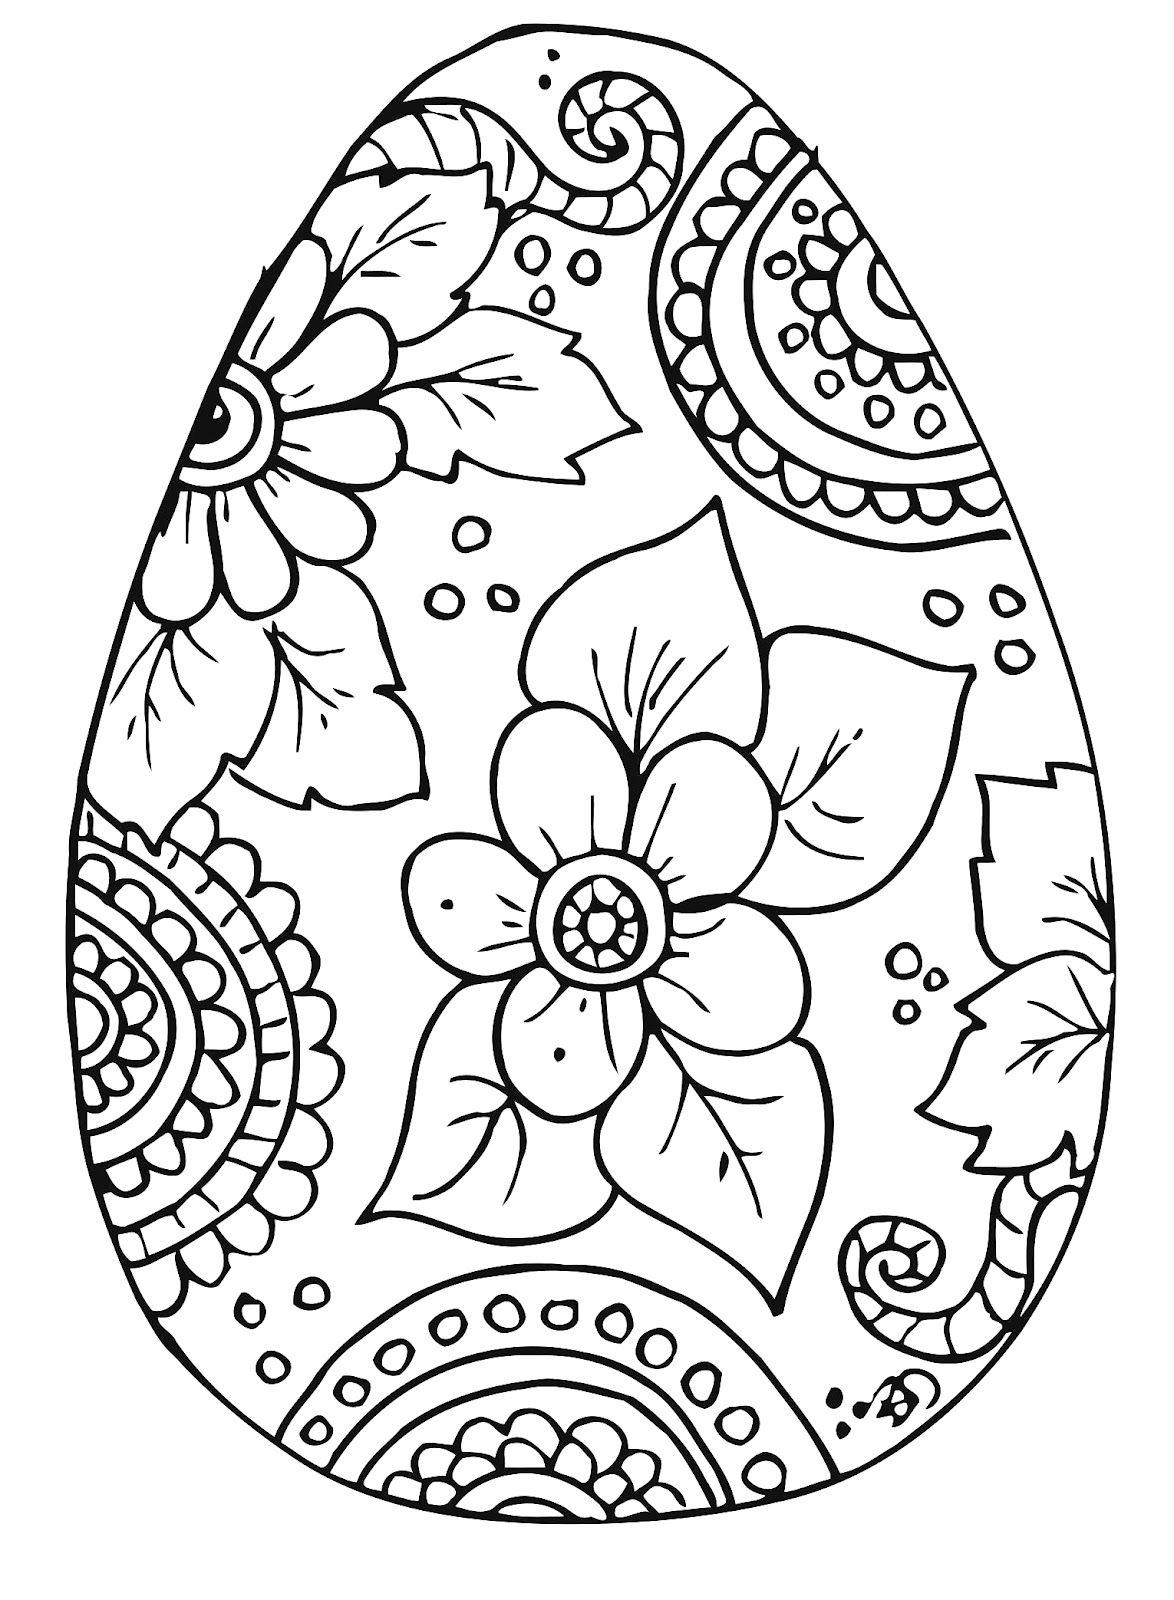 Printable Easter Coloring Pages - 2.13.kaartenstemp.nl • - Coloring Pages Free Printable Easter